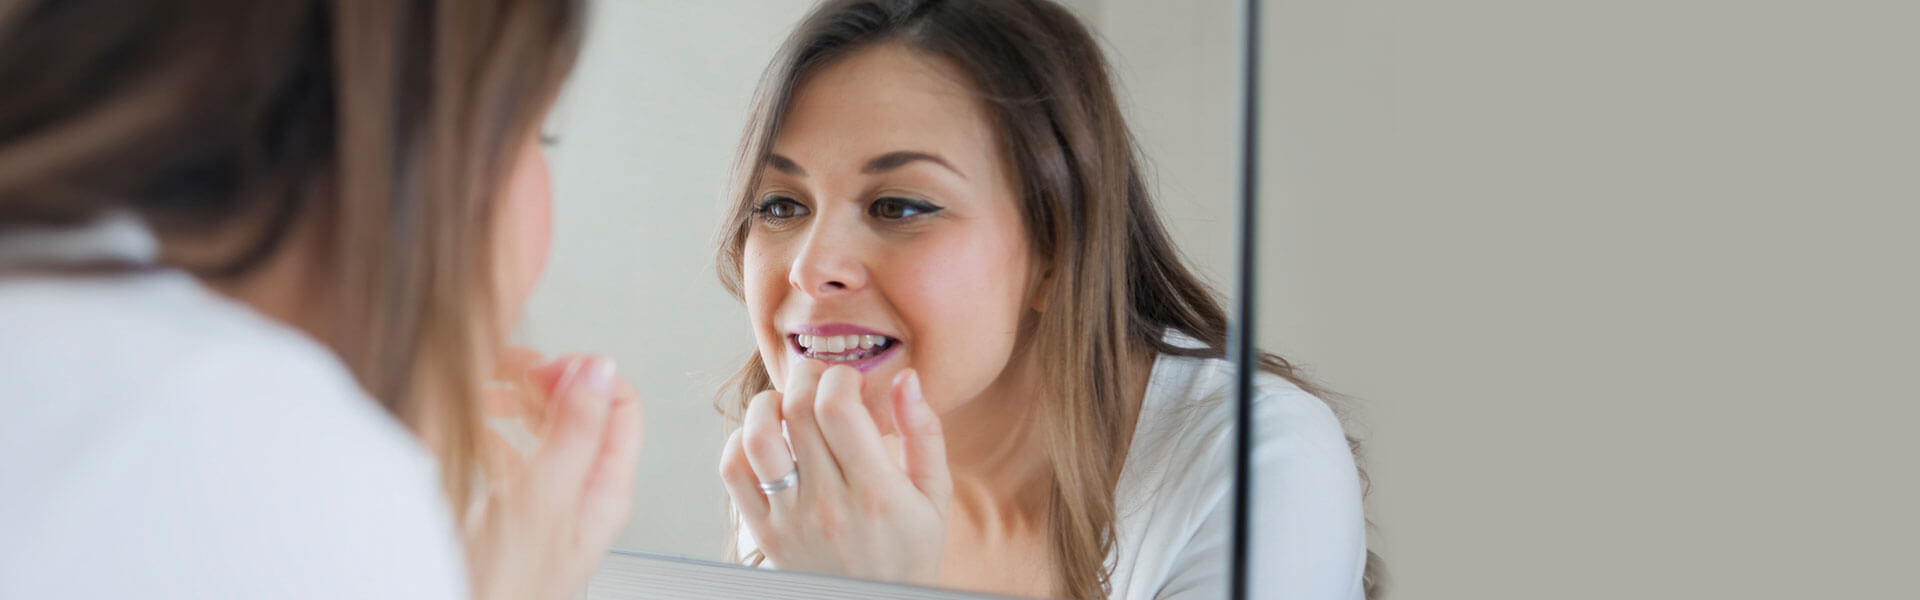 Dental Problems that Can Be Addressed with Full Mouth Reconstruction